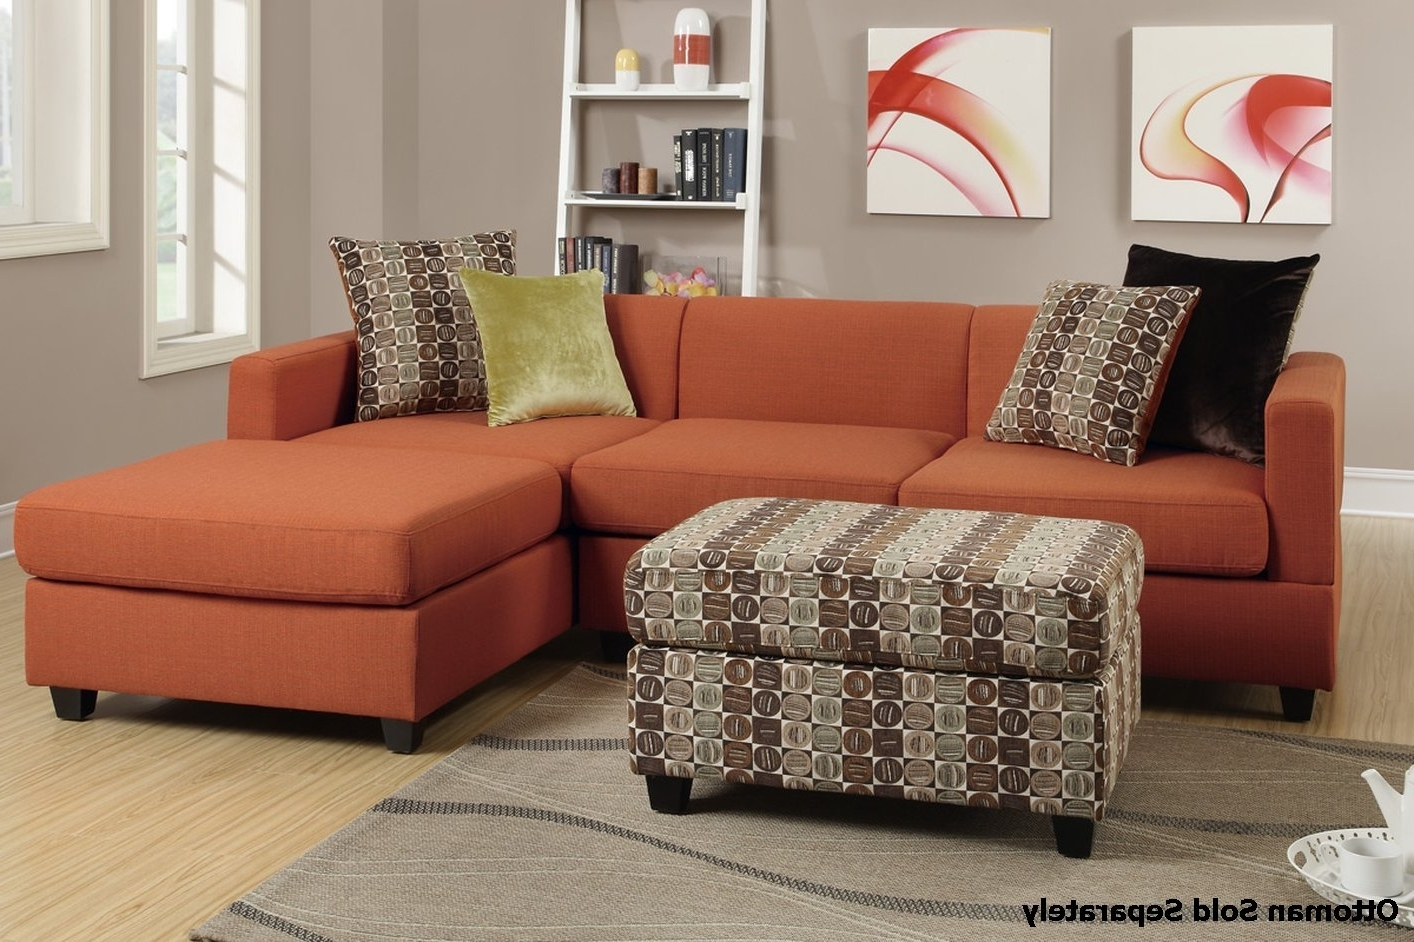 Most Recent Fabric Sectional Sofas Within Sectional Sofa Design: Fabric Sectional Sofa Best Ever Leather (View 13 of 15)